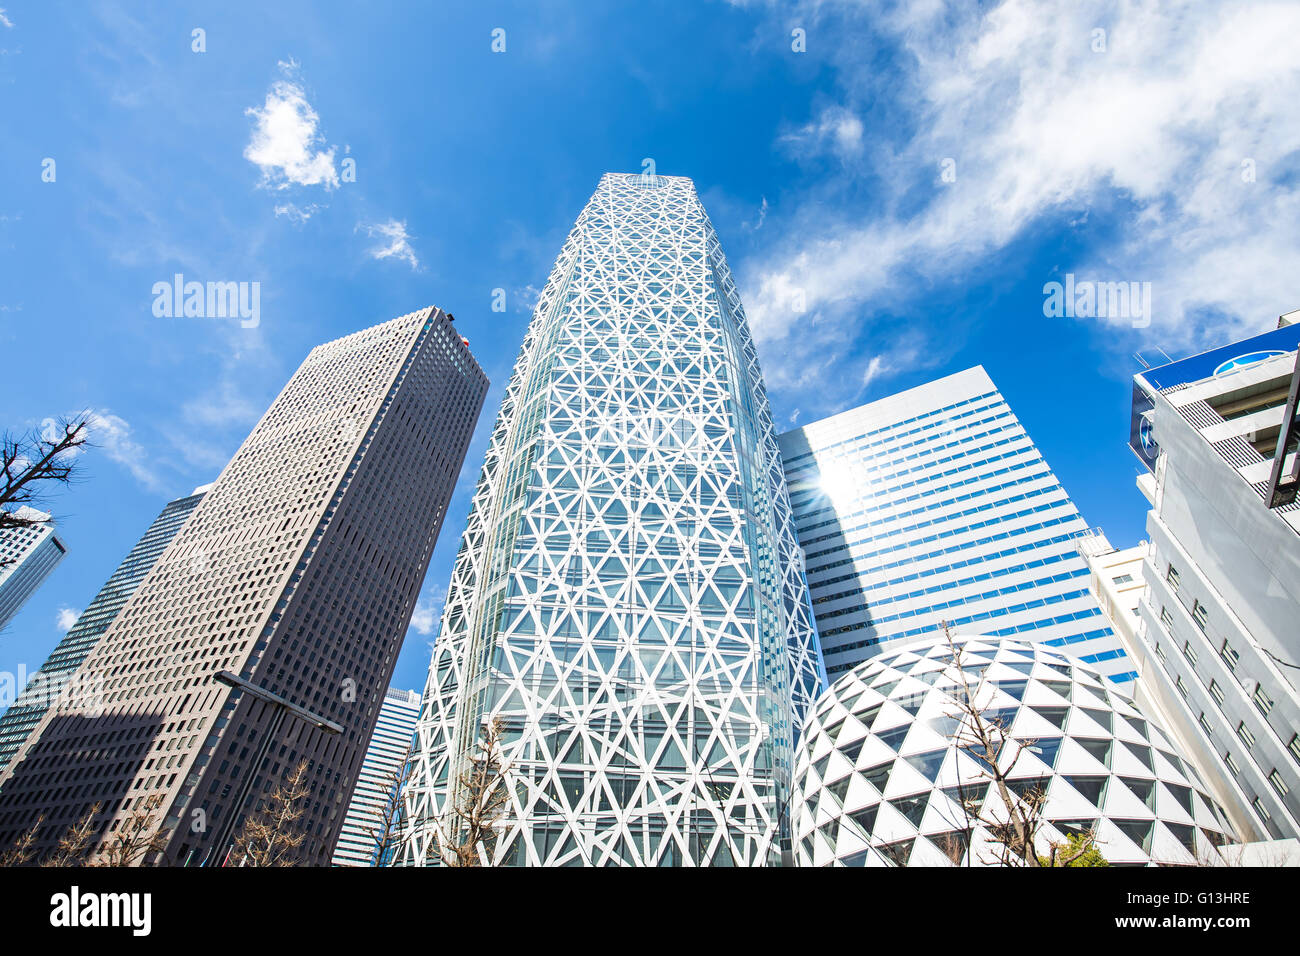 Tokyo, Japan - February 13, 2015: Shinjuku is a special ward located in Tokyo Metropolis, Japan. It is a major commercial - Stock Image